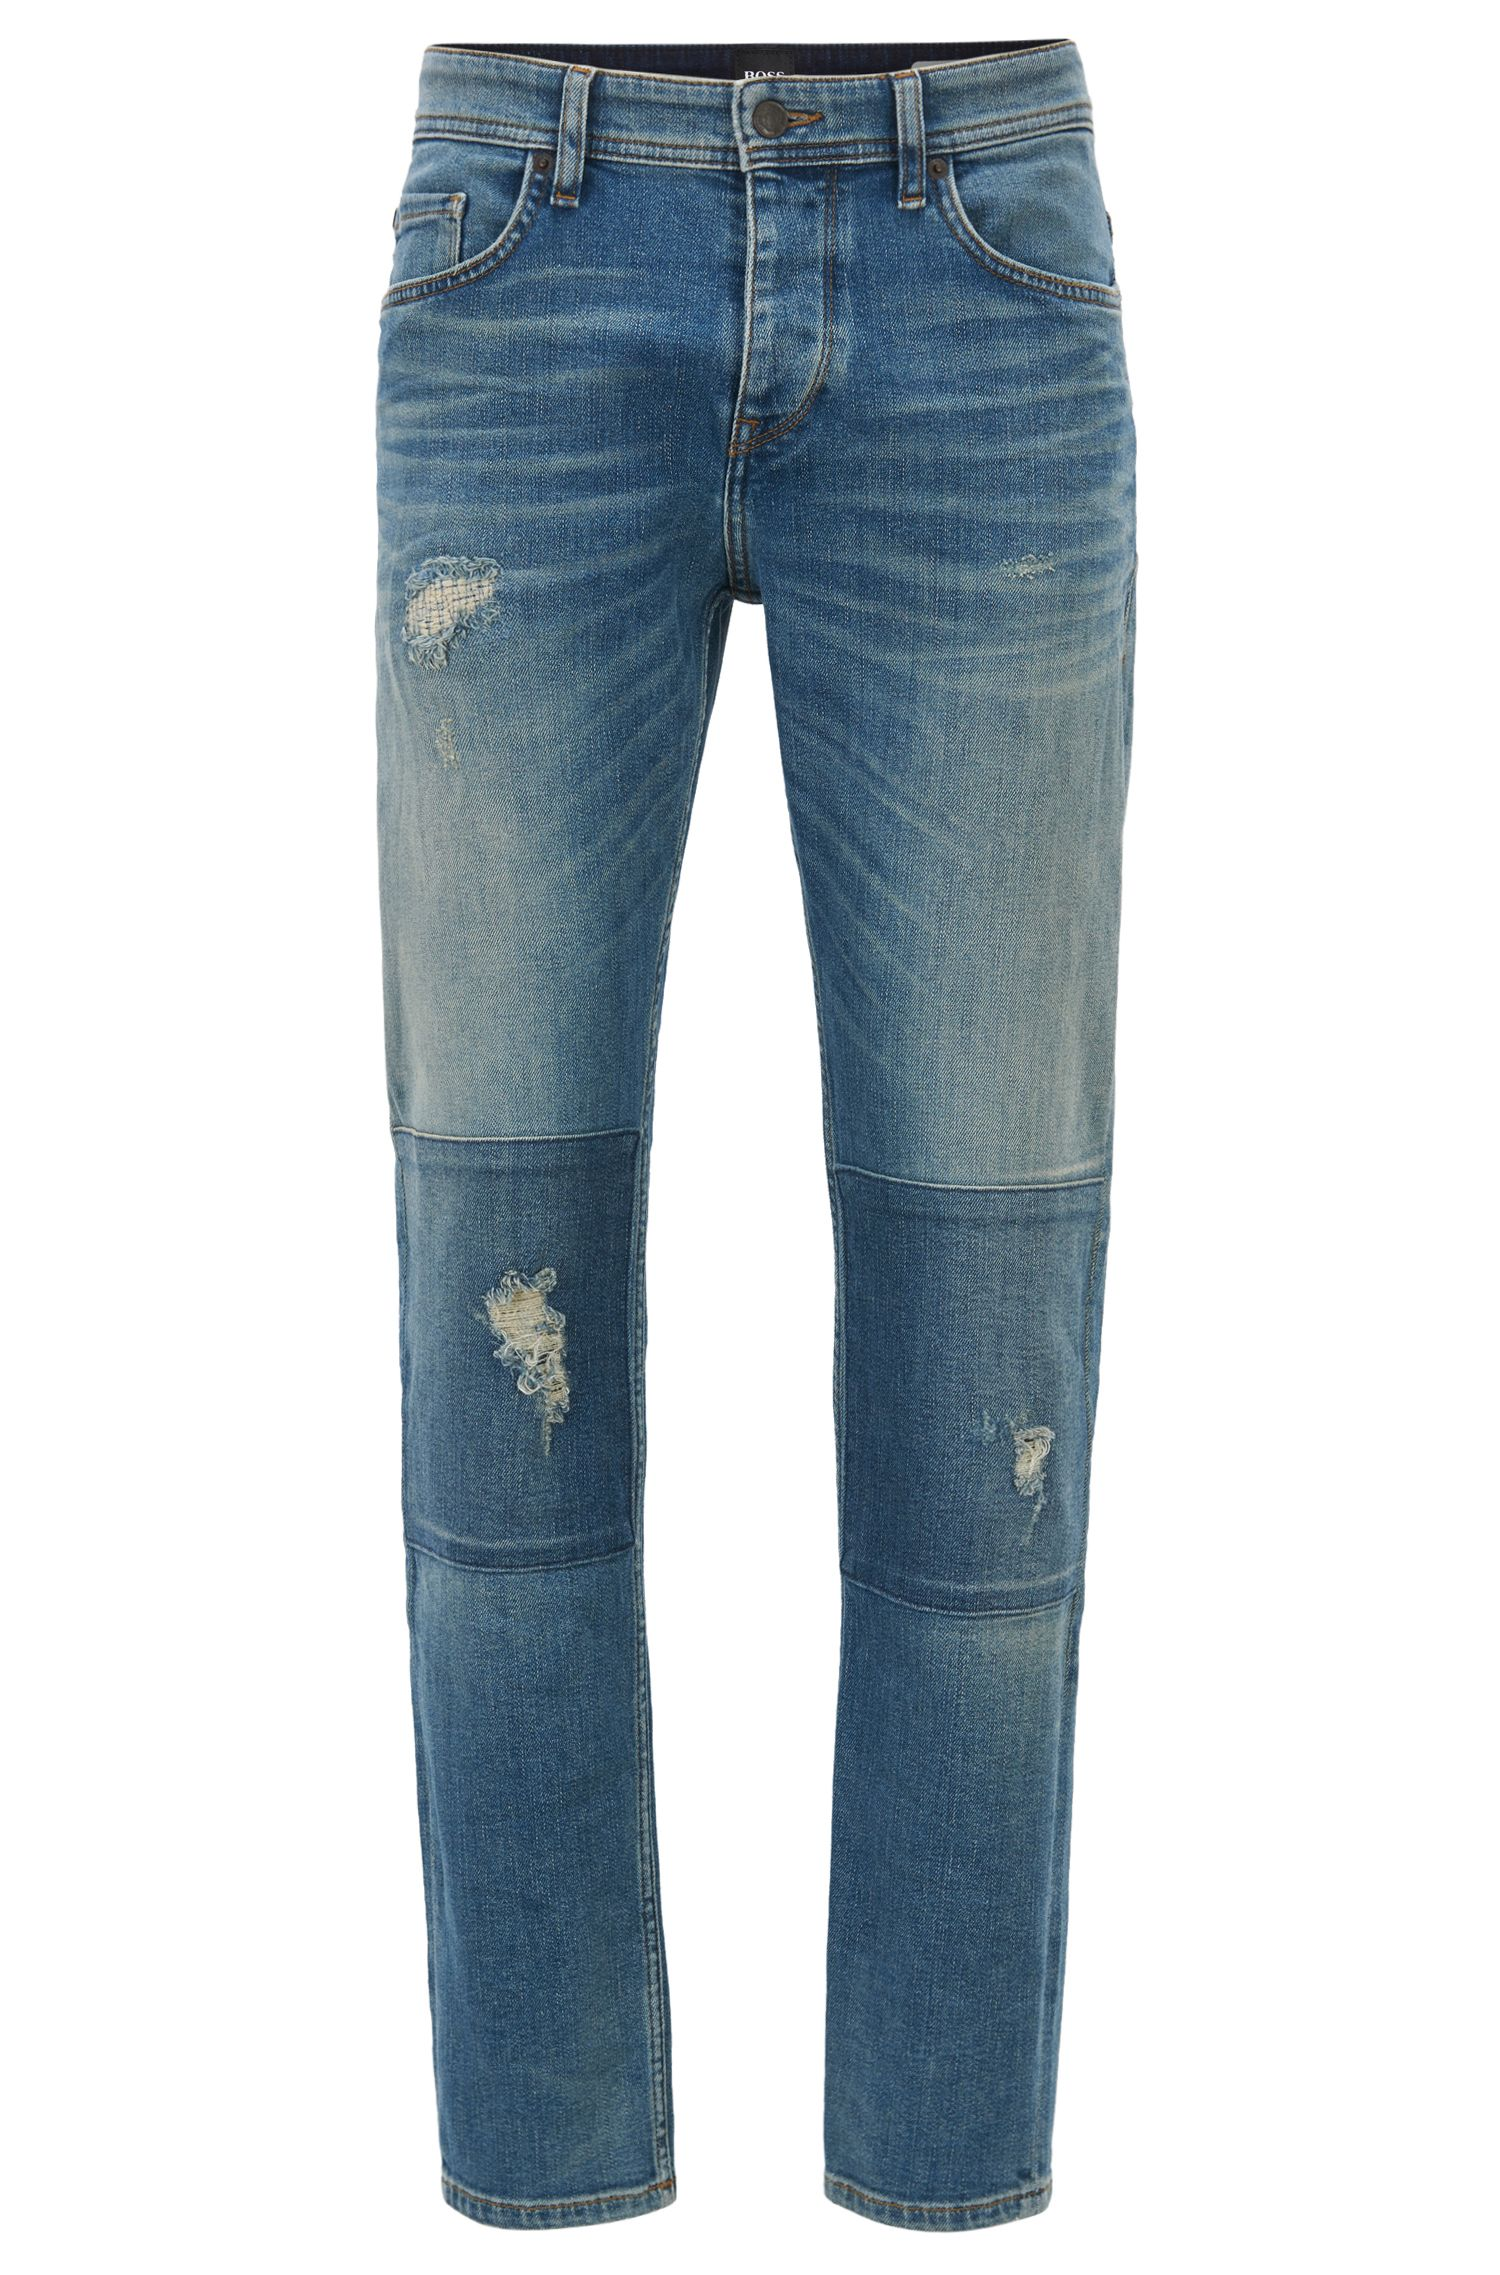 Tapered-fit jeans in vintage comfort denim